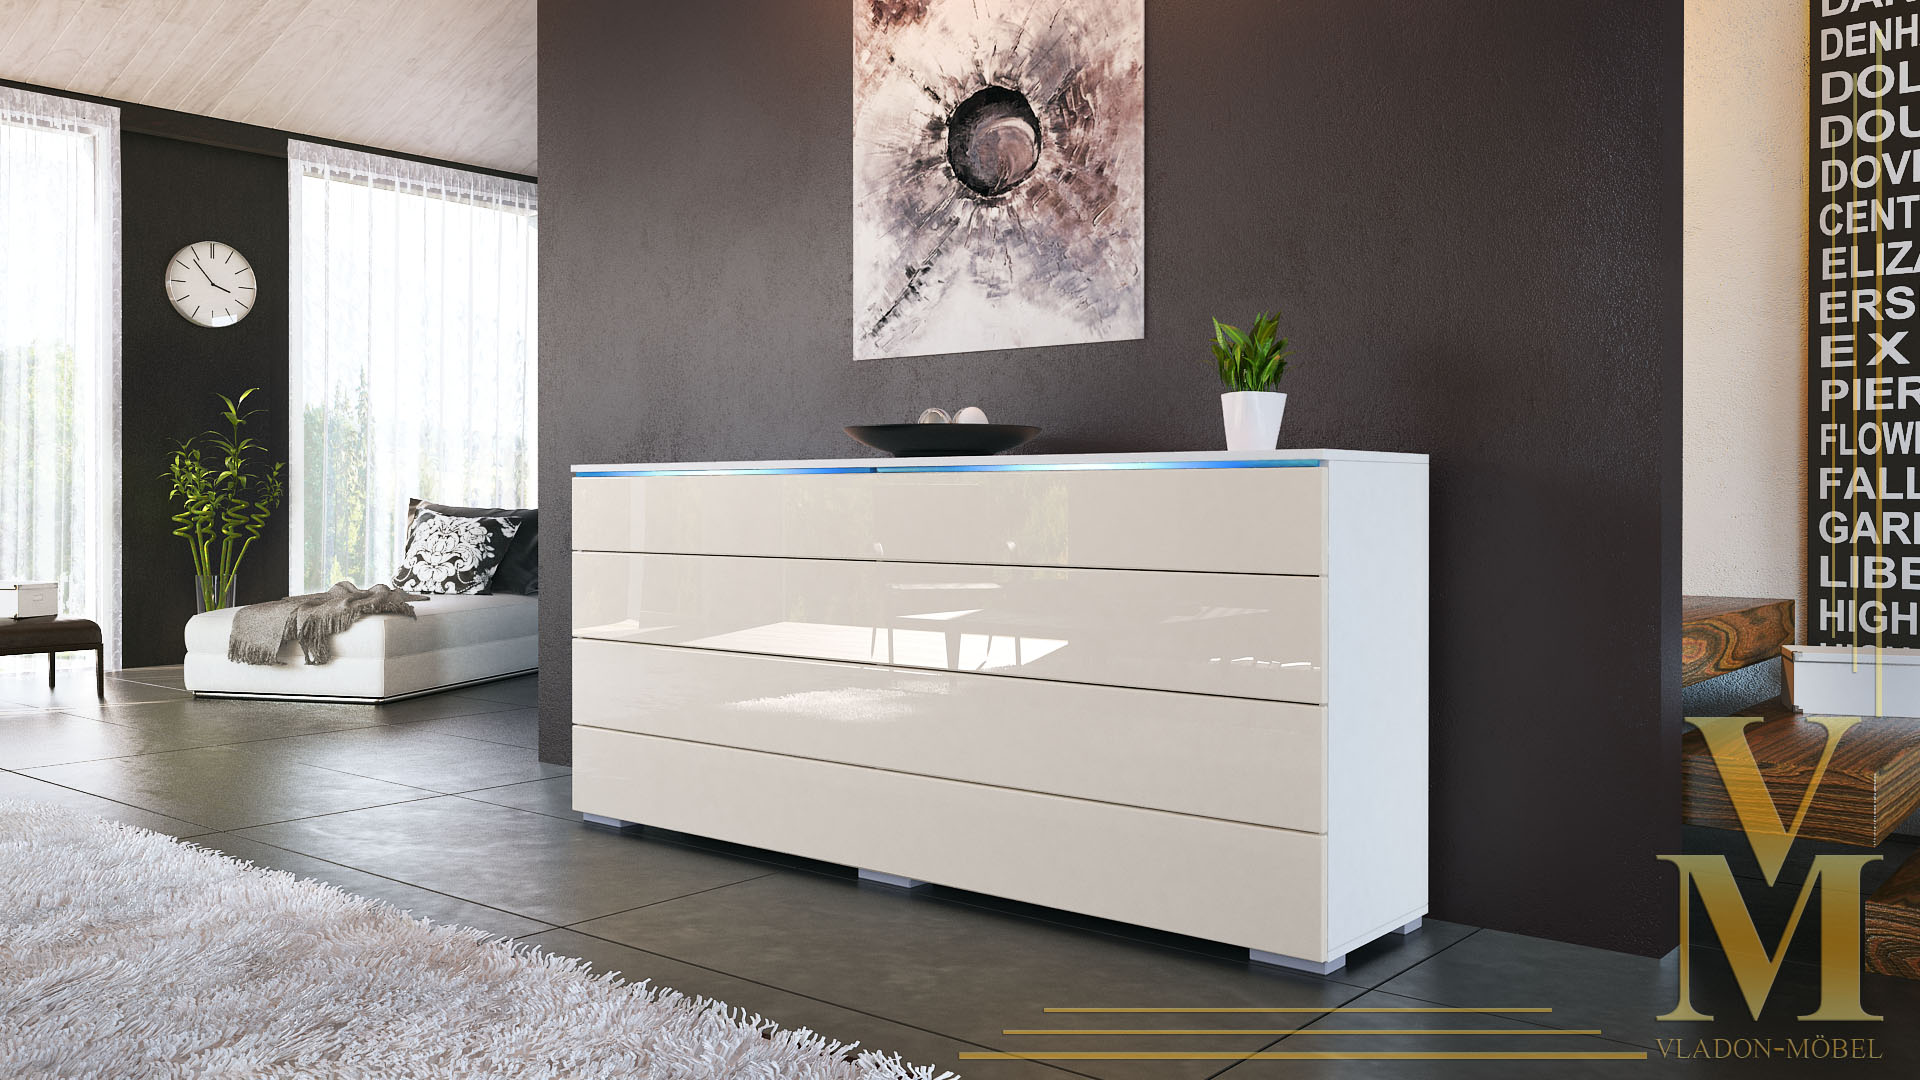 angebot sideboard kommode tv board schrank pl n wei hochglanz naturt ne ebay. Black Bedroom Furniture Sets. Home Design Ideas